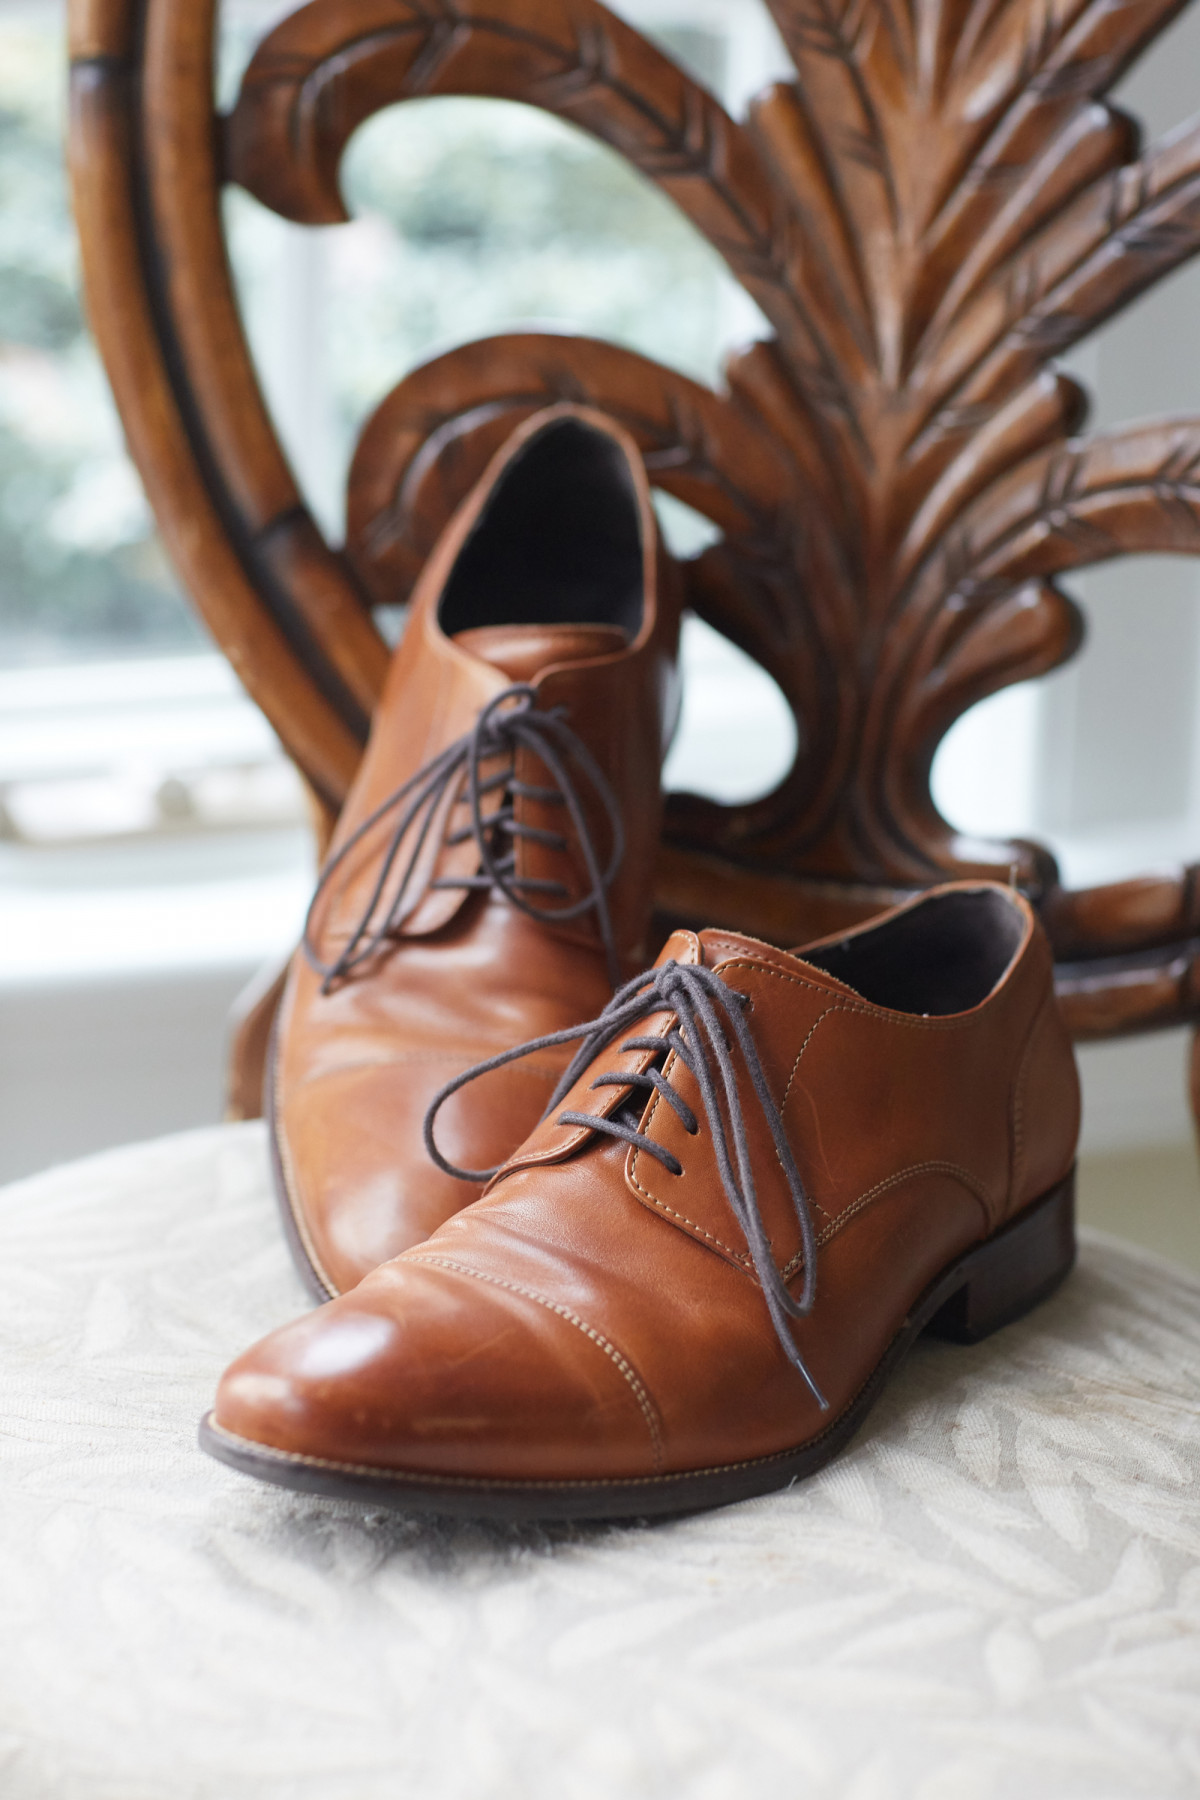 Editorial photo a pair of men's brown leather shoes placed on a cushioned dining chair